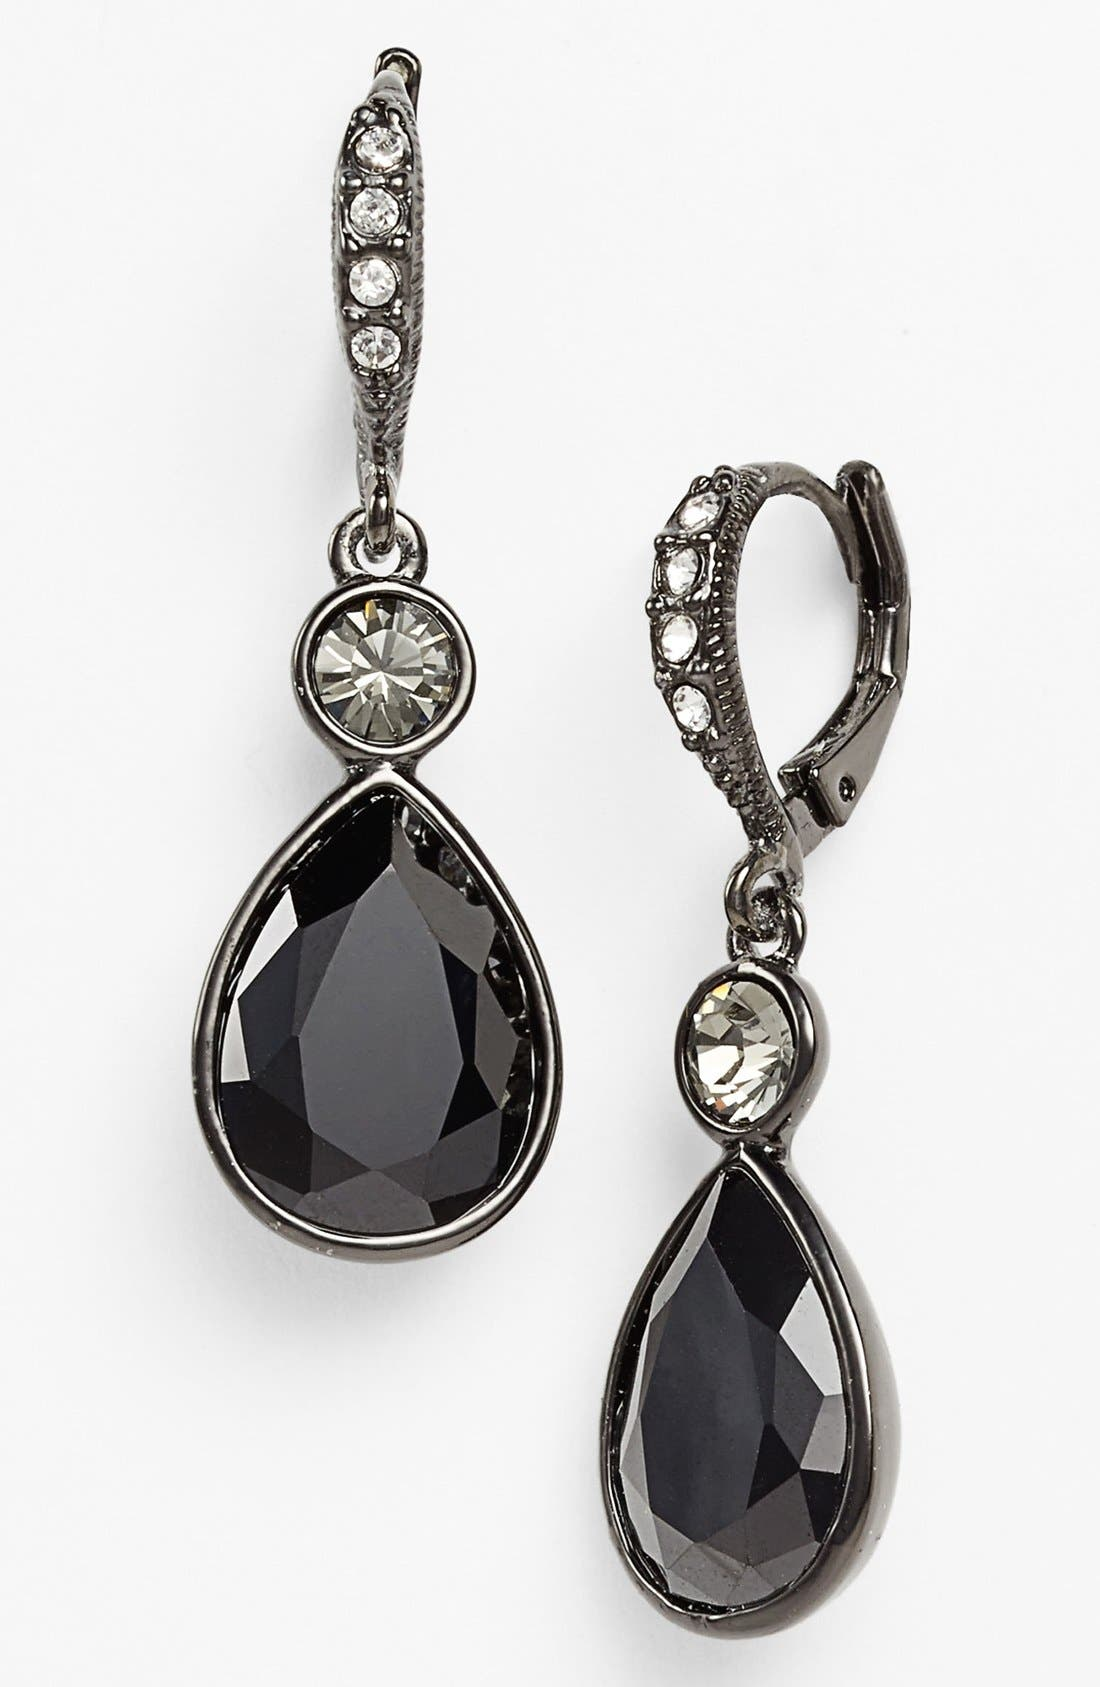 Alternate Image 1 Selected - Givenchy Teardrop Earrings (Nordstrom Exclusive)